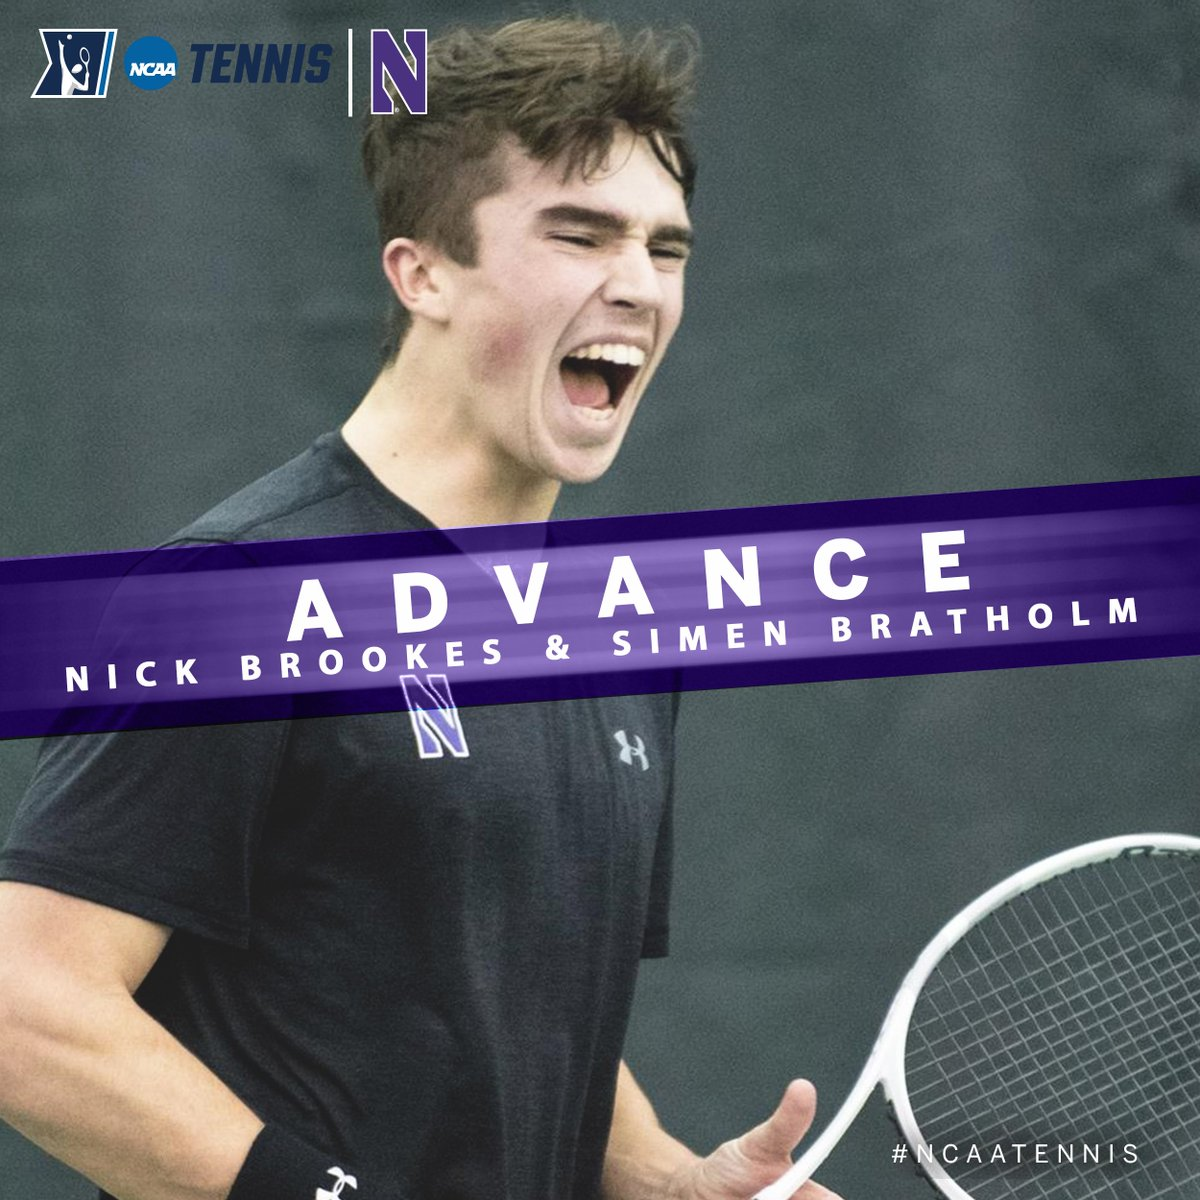 In the @NCAATennis Doubles Championship, Simen Bratholm and Nick Brookes of @NUMensTennis defeated #5-8 seed Harrison Scott and Christian Sigsgaard of Texas, 7-5, 2-6, 10-8 to move to the Second Round #B1GMTennis